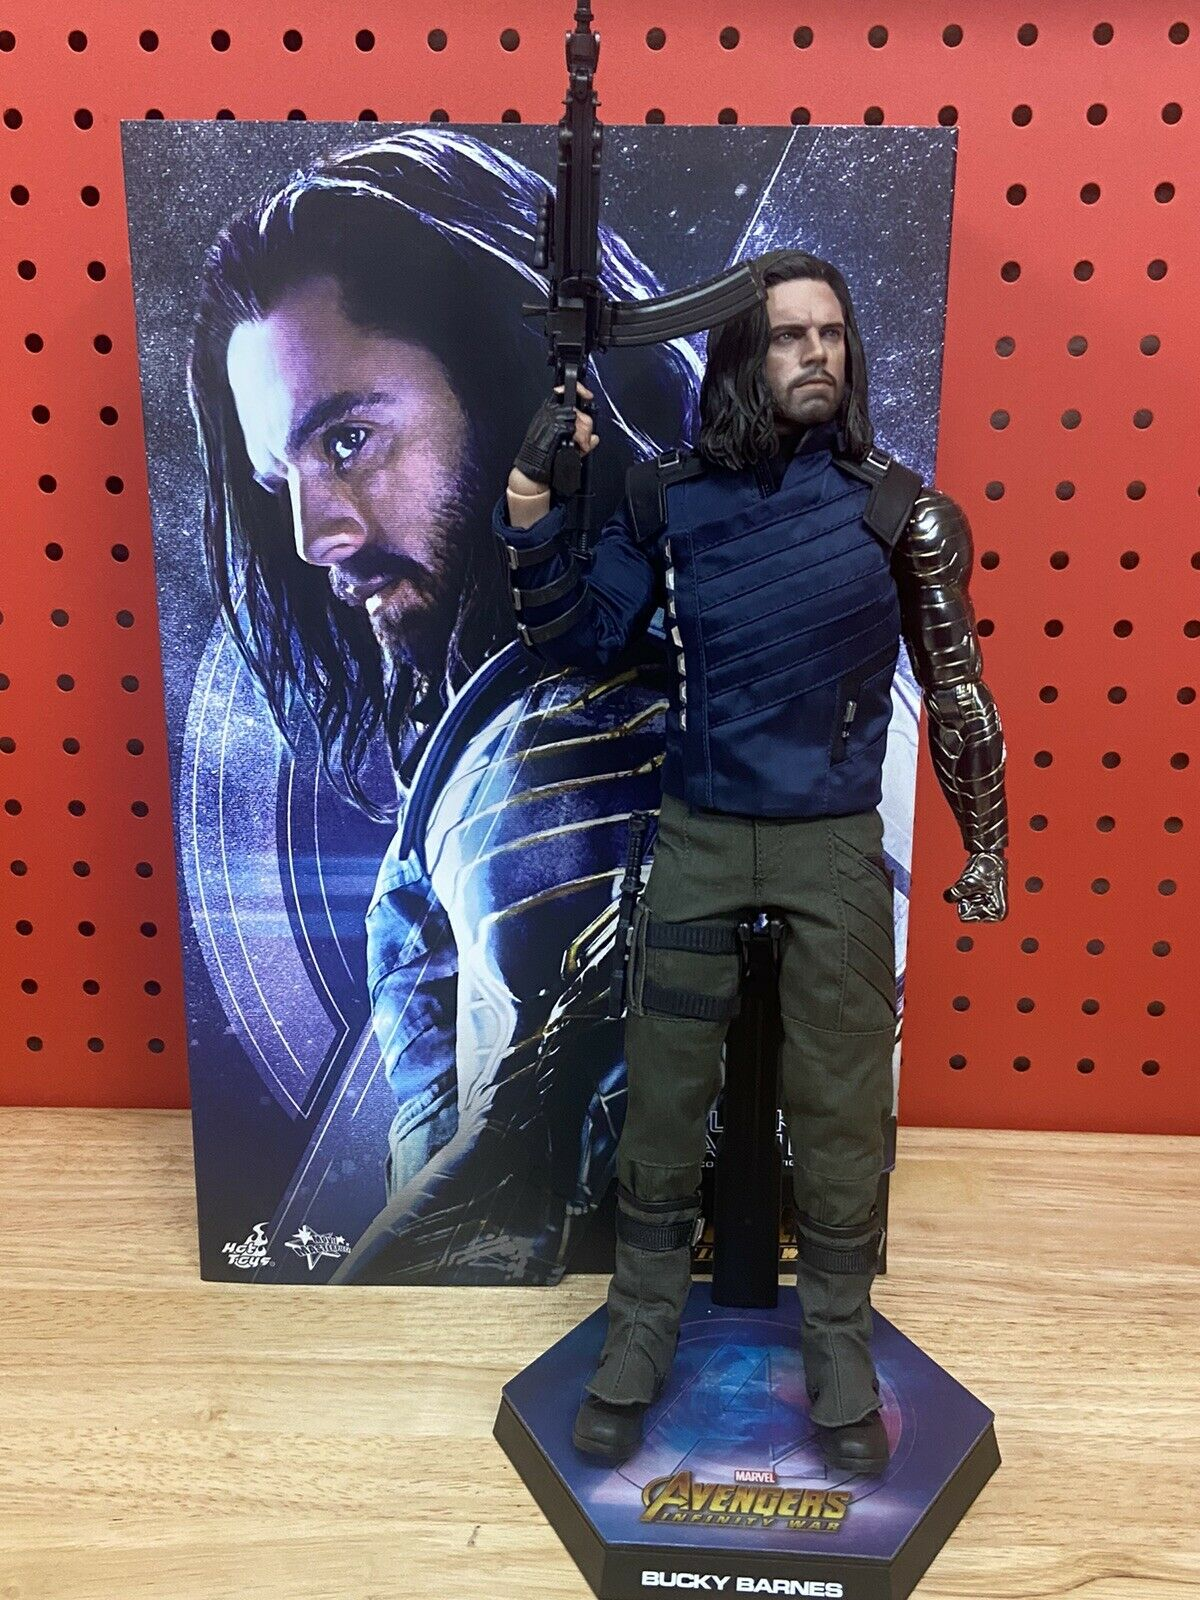 Hot Toys Bucky Barnes 1/6th Scale Collectible Figure mms509 used preowned  on eBay thumbnail